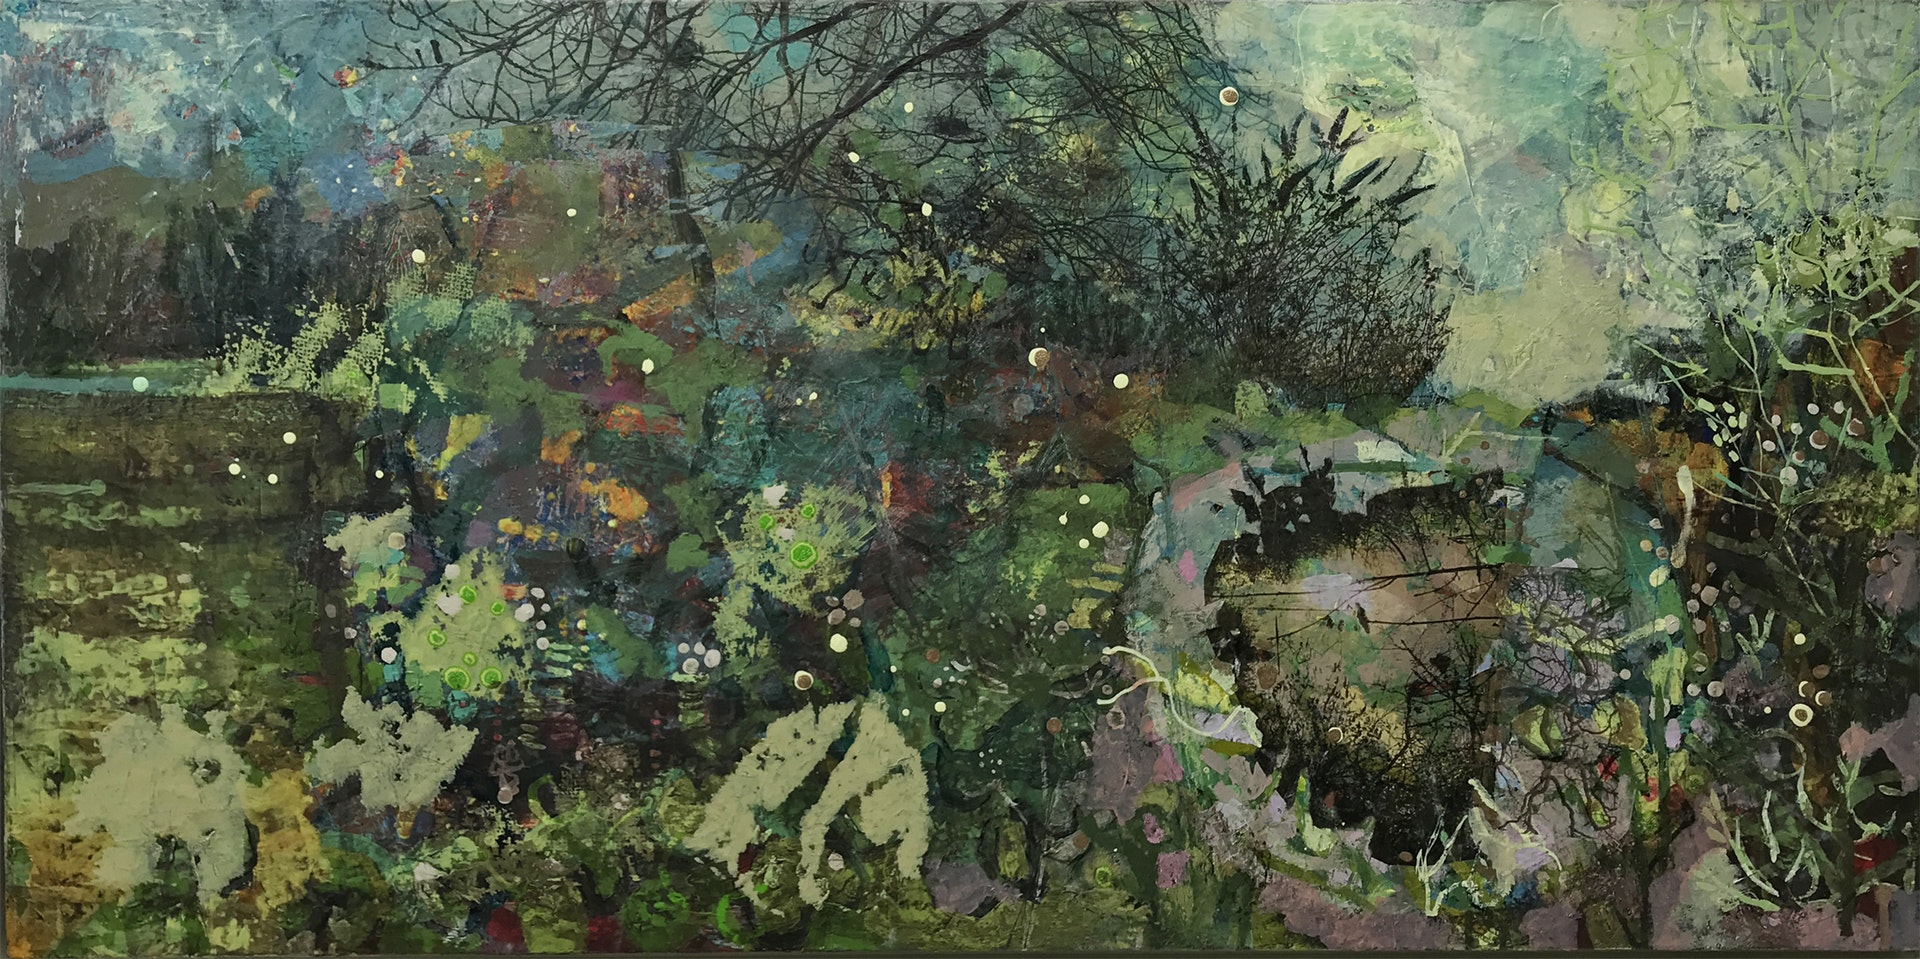 'January Culvert', Frances Ryan, Oil and collage on canvas, 40 x 80 x 2 cm